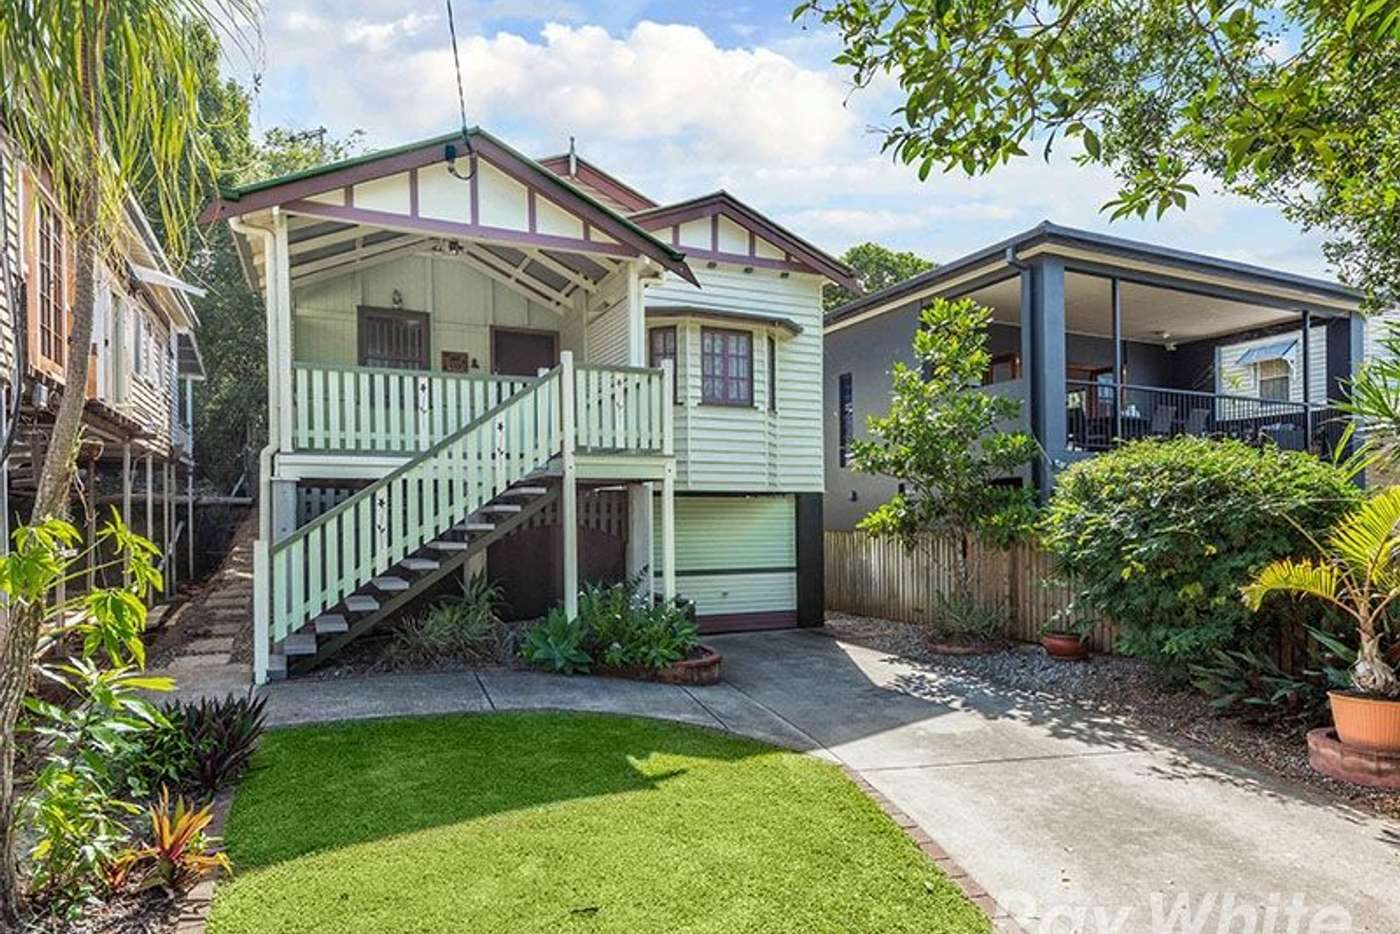 Main view of Homely house listing, 144 Cavendish Street, Nundah QLD 4012